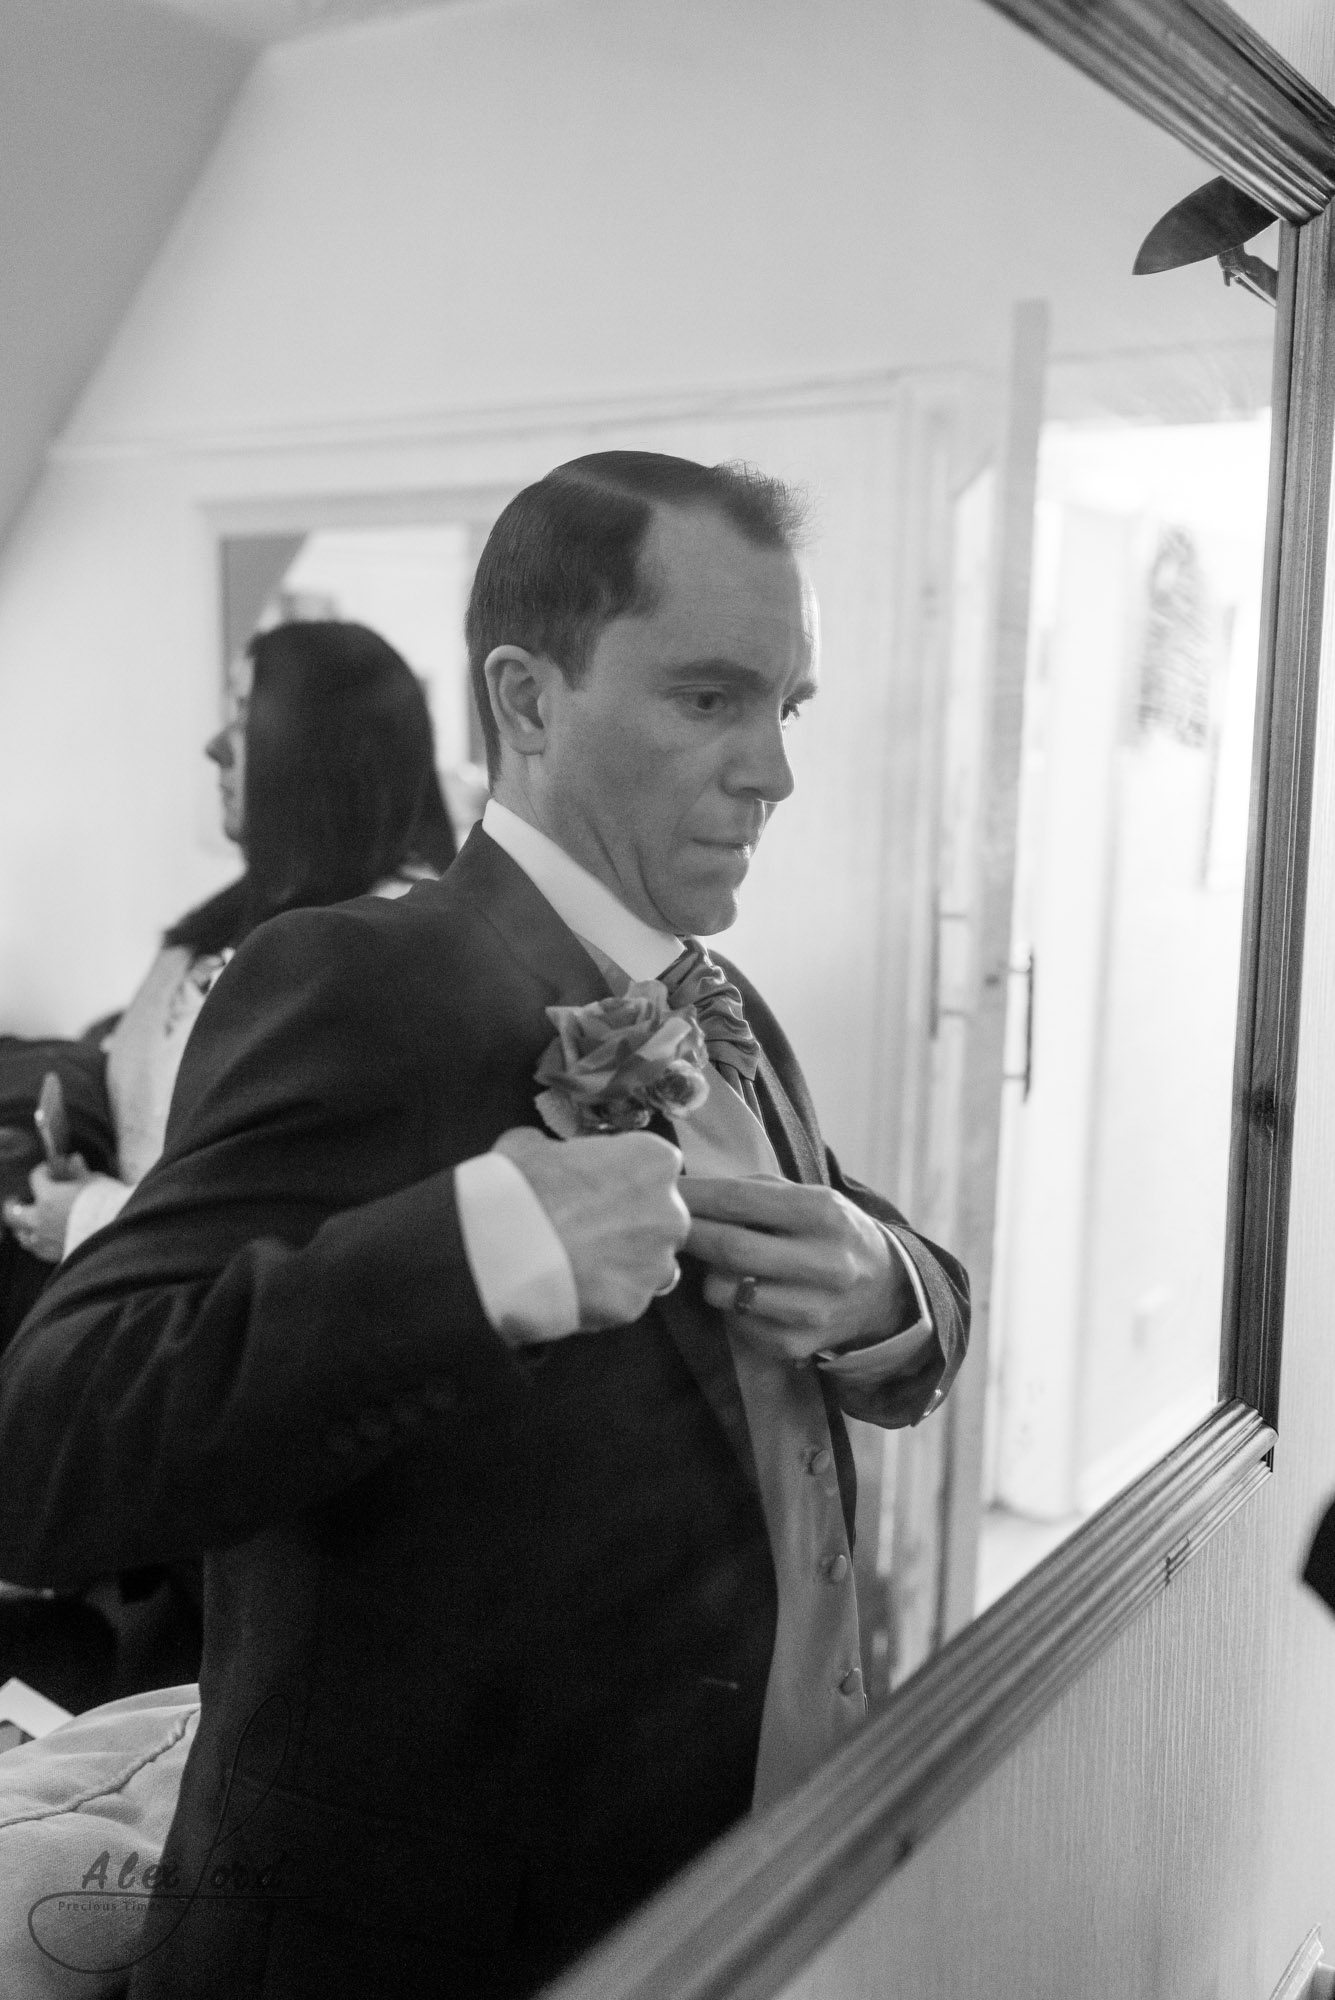 a member of the grooms party makes some final checks to his suit before they leave for the wedding ceremony